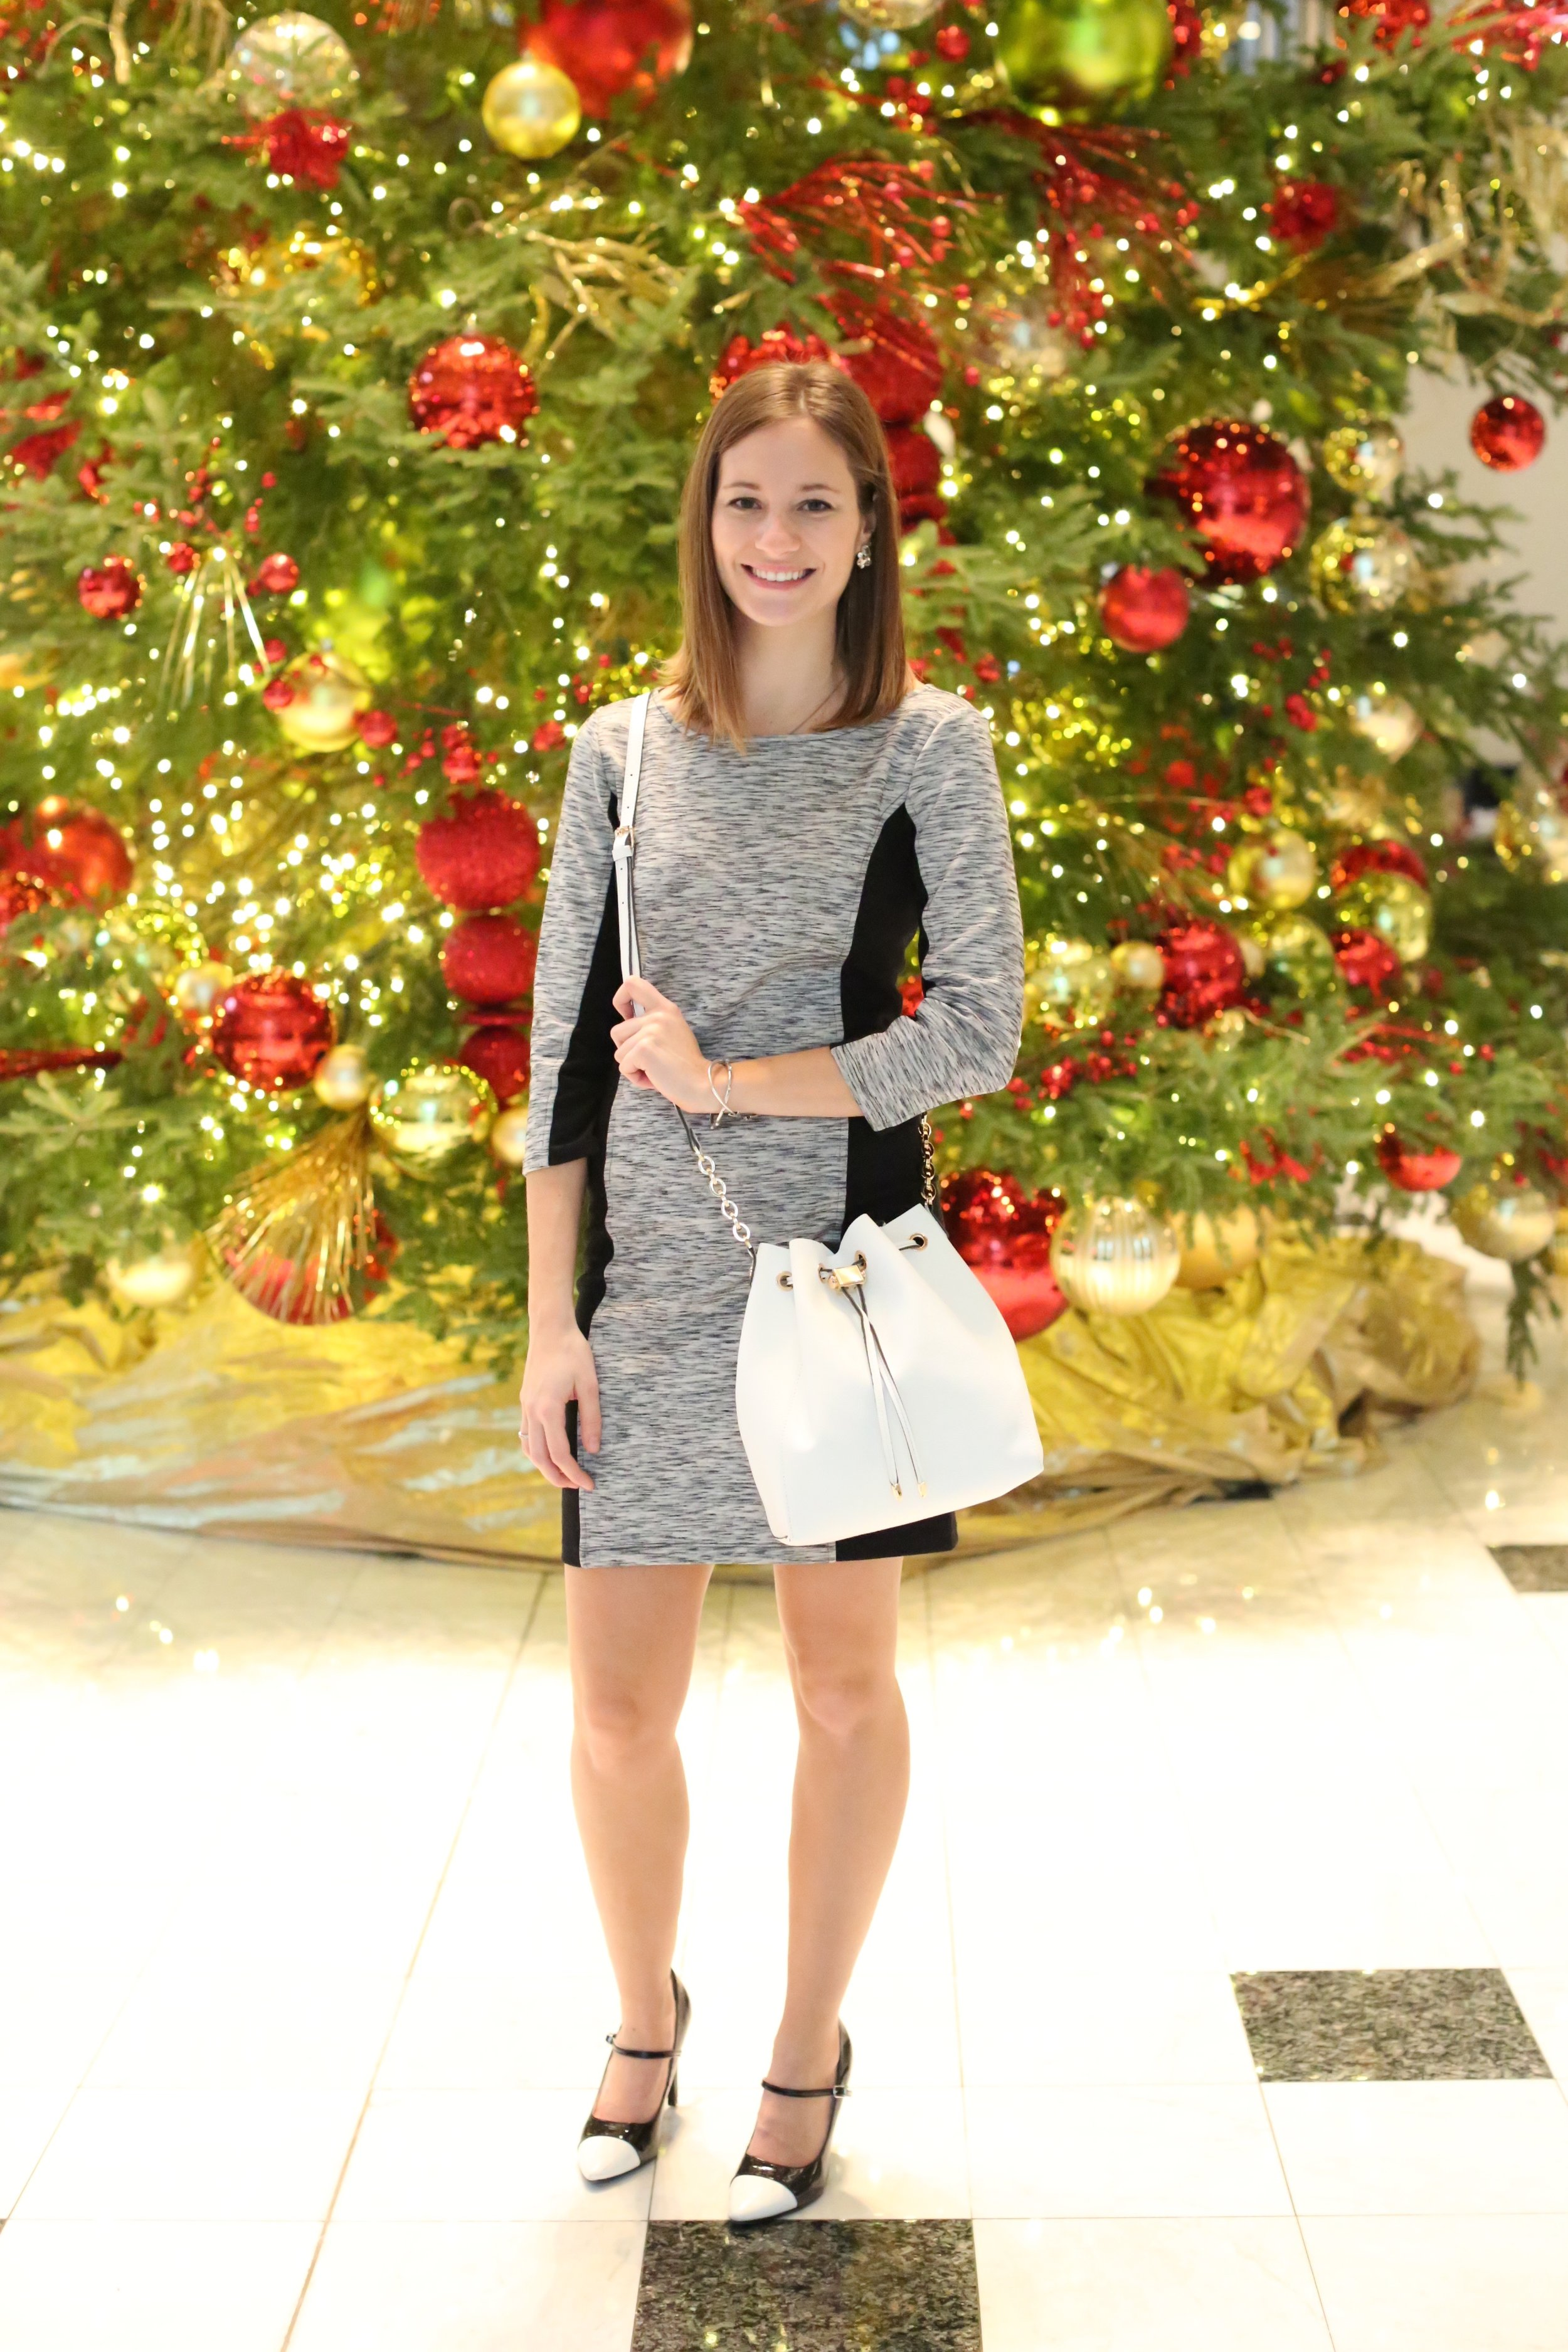 Christmas Outfit |Katelyn Now